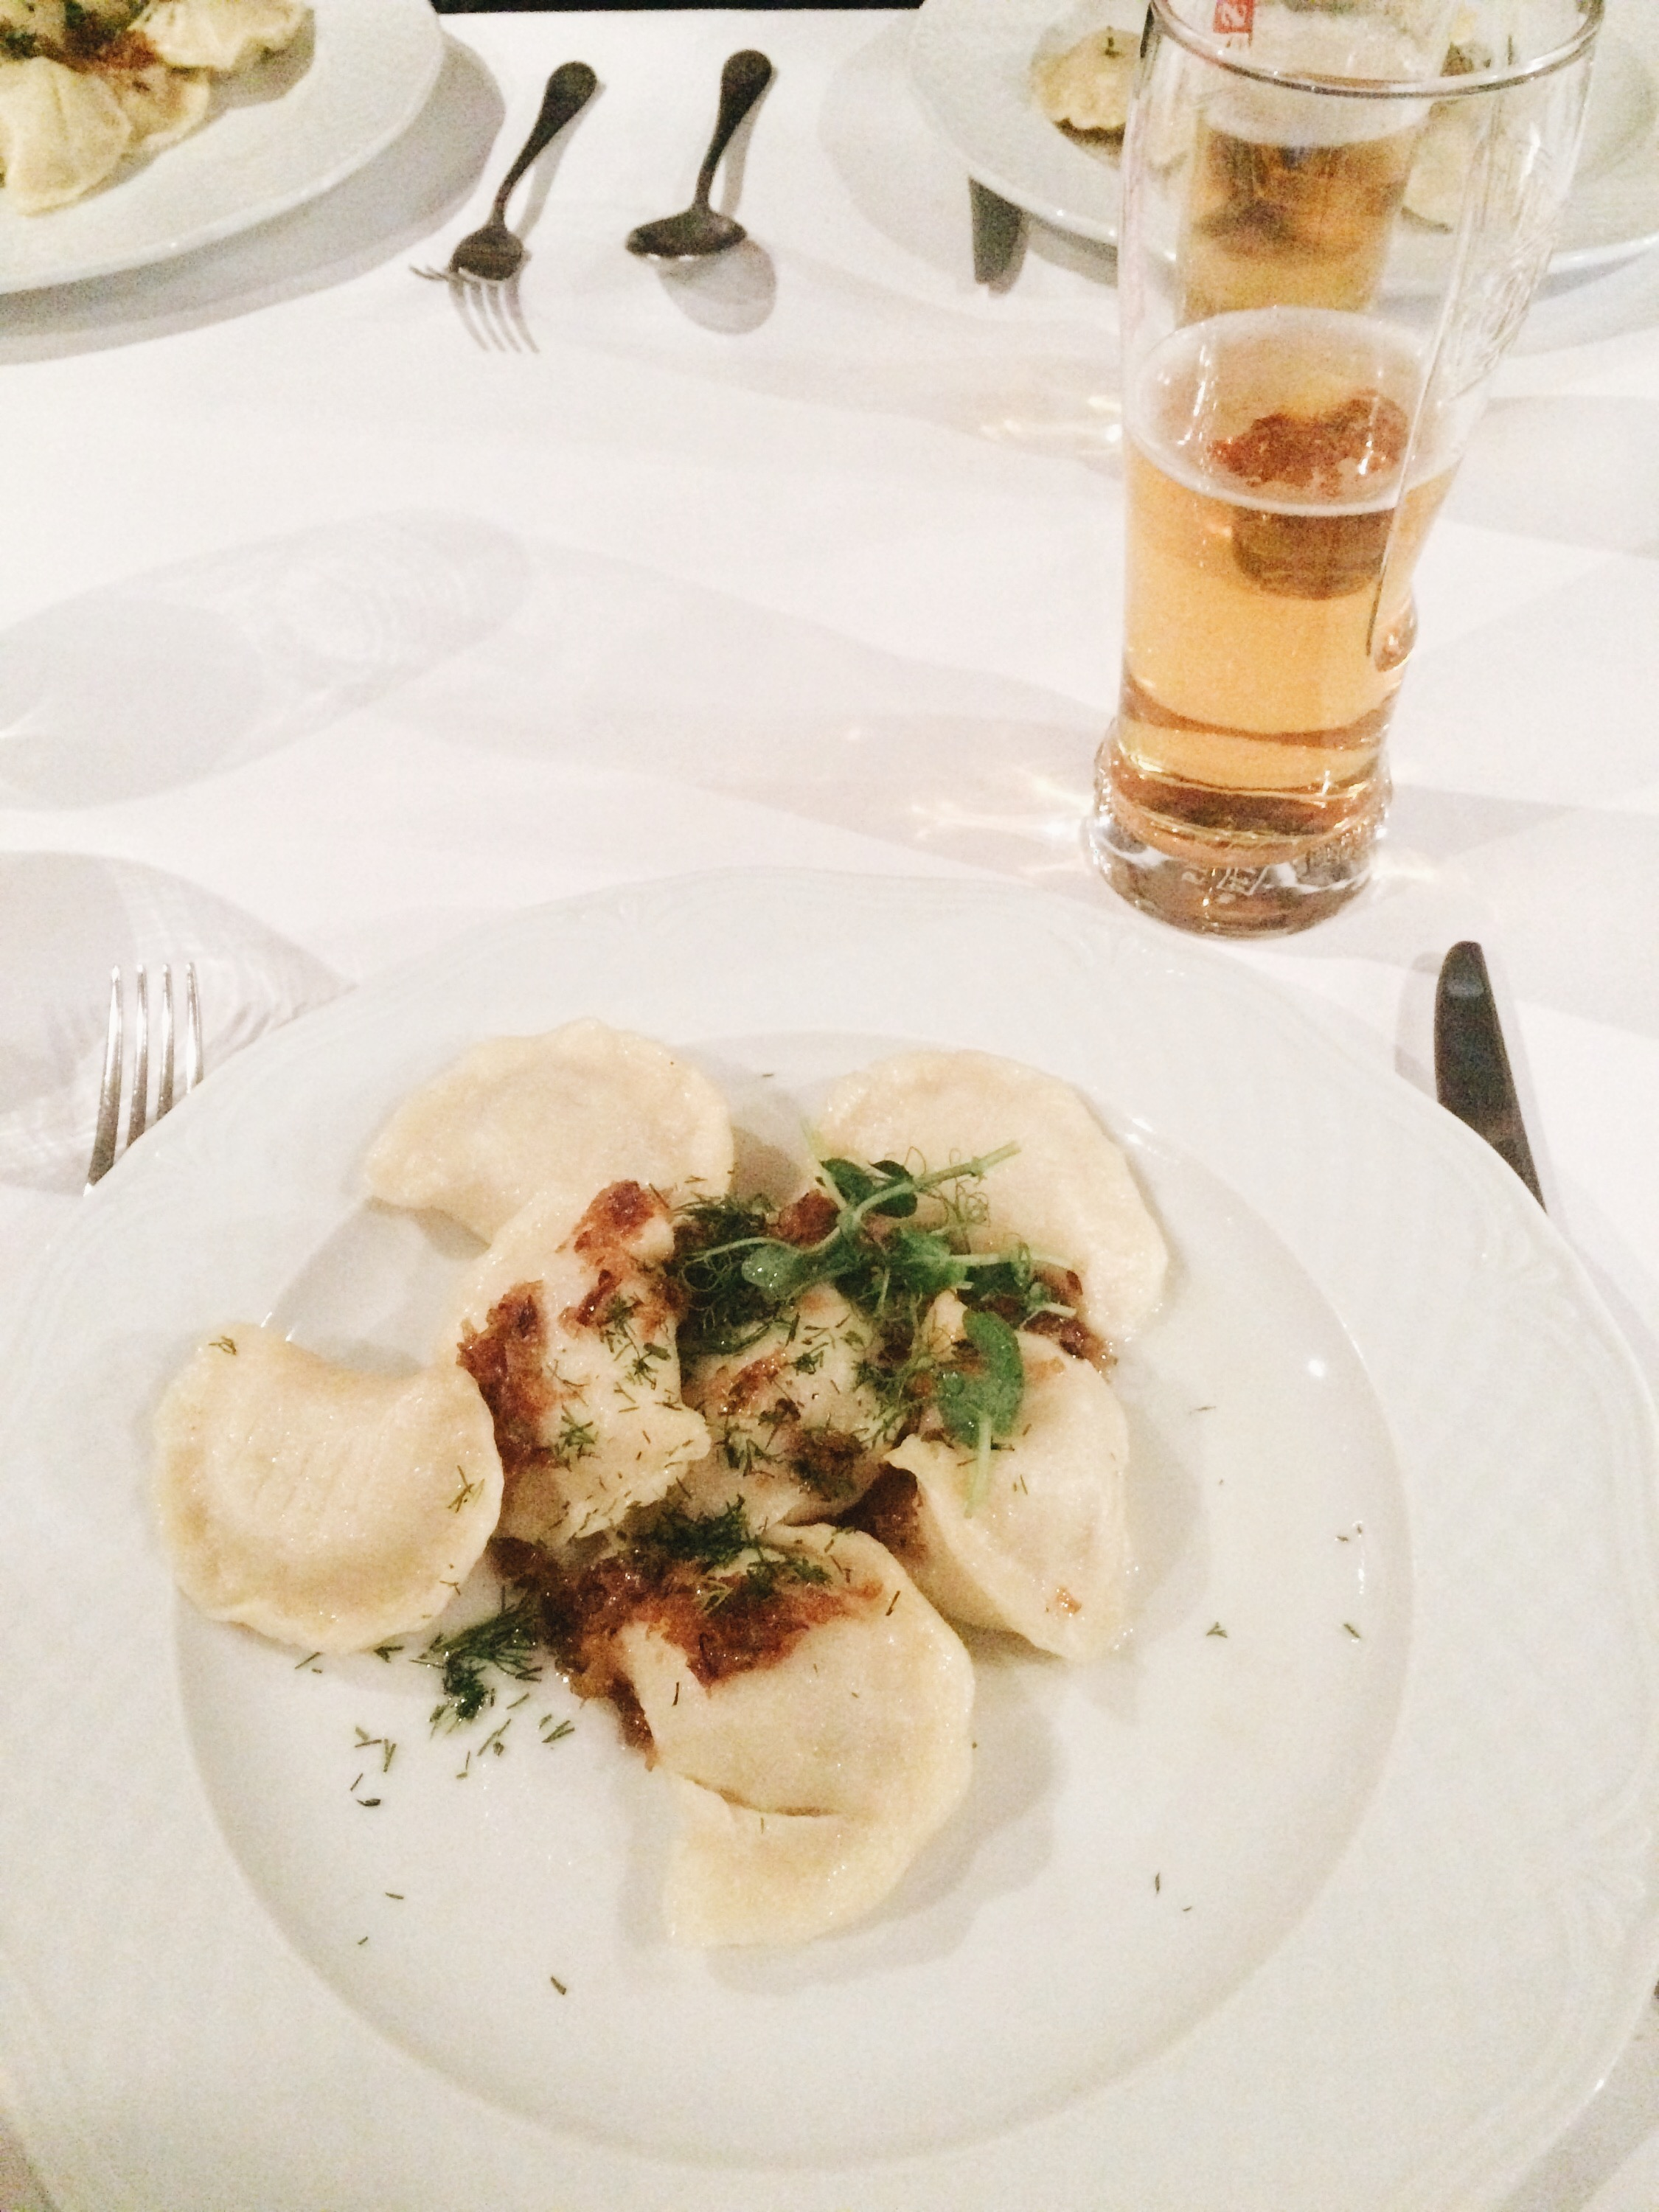 Pierogies in Poland